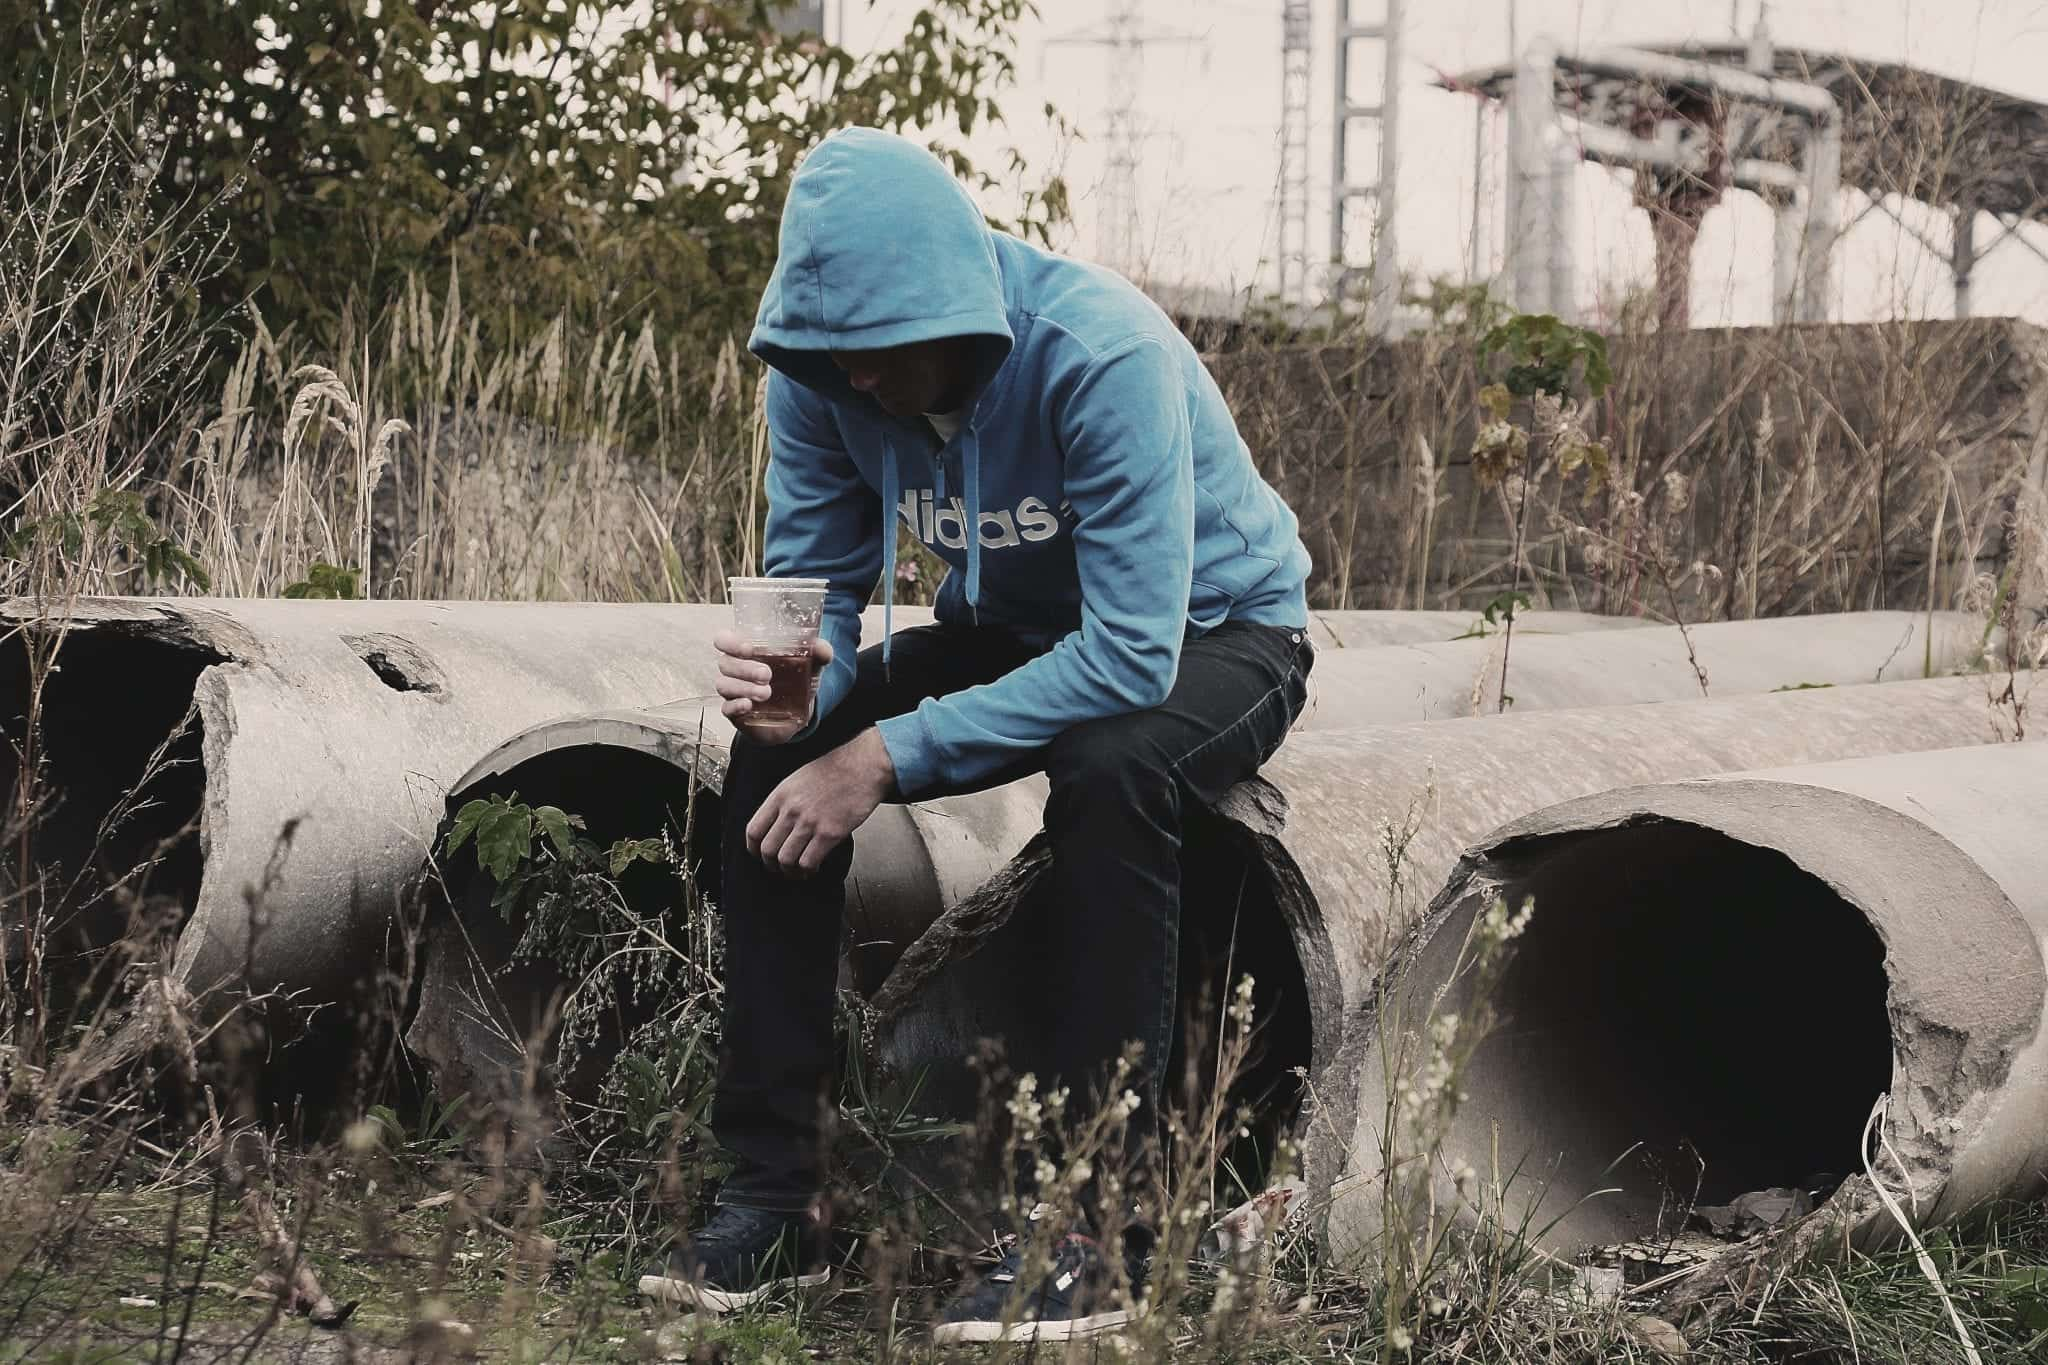 Man sitting alone in abandoned area; image via Pxhere, CC0.